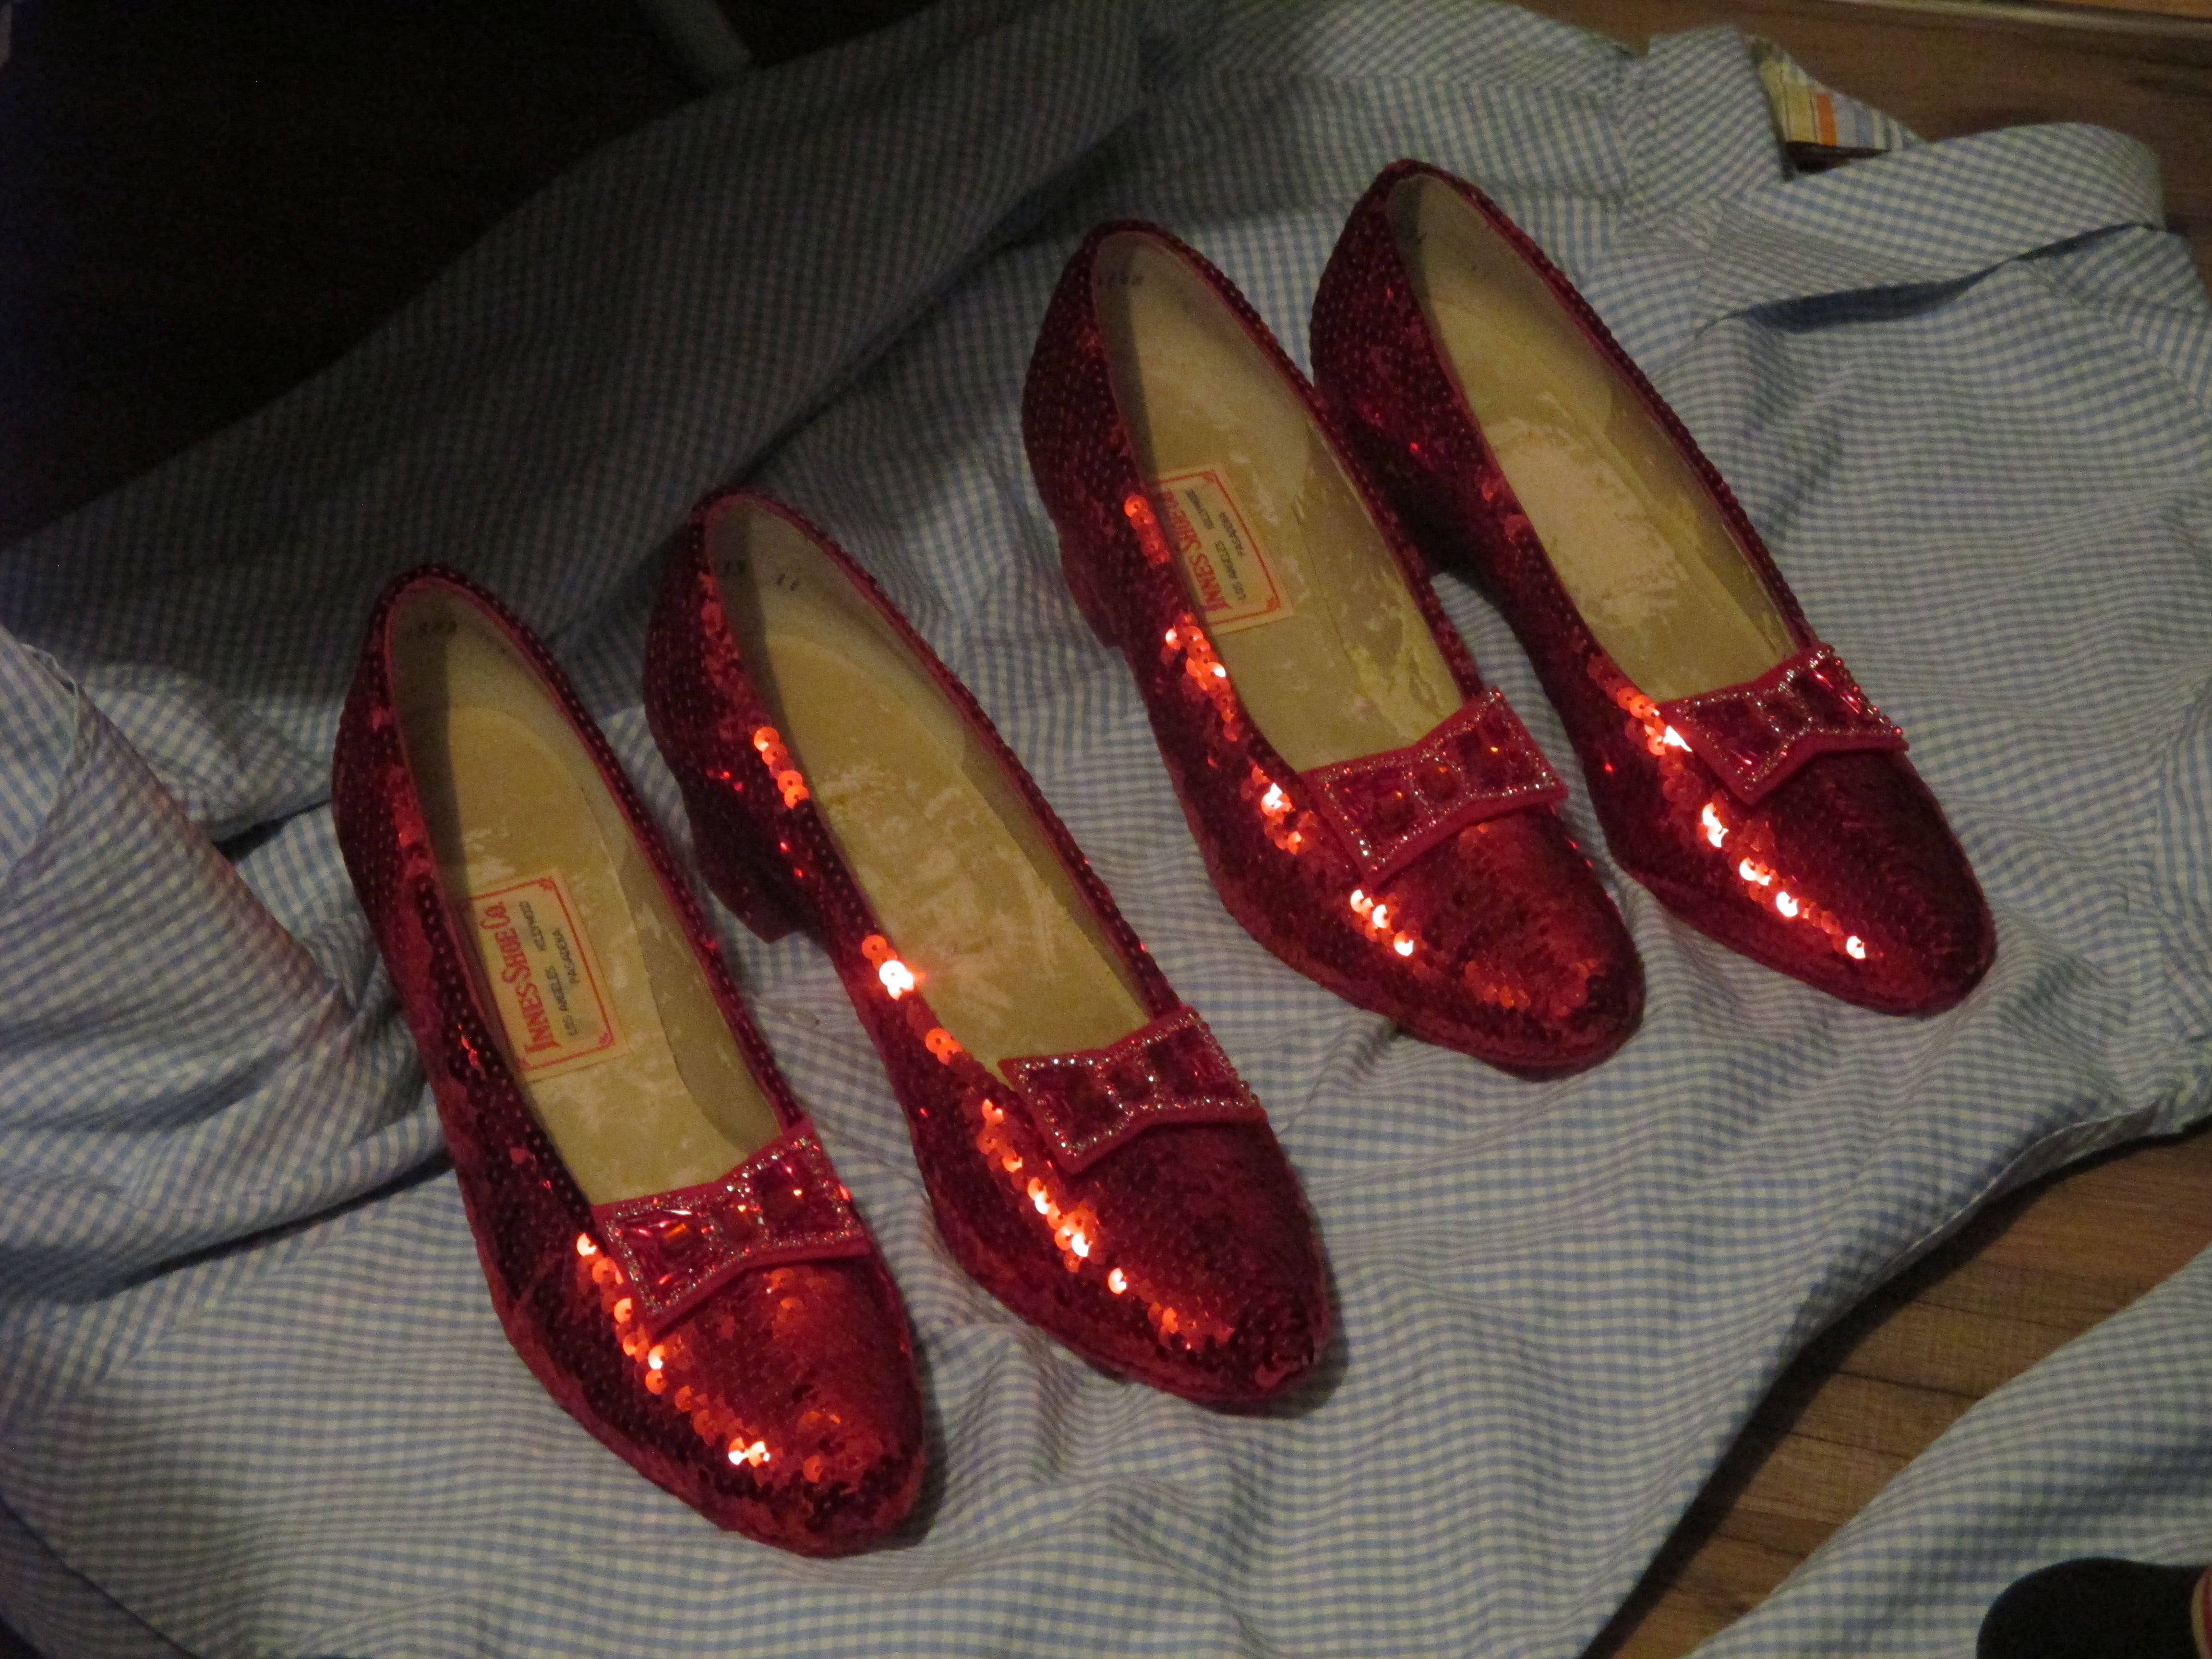 Replica ruby slippers The Wizard of Oz Judy Garland costume & Replica ruby slippers The Wizard of Oz Judy Garland costume | Billy ...